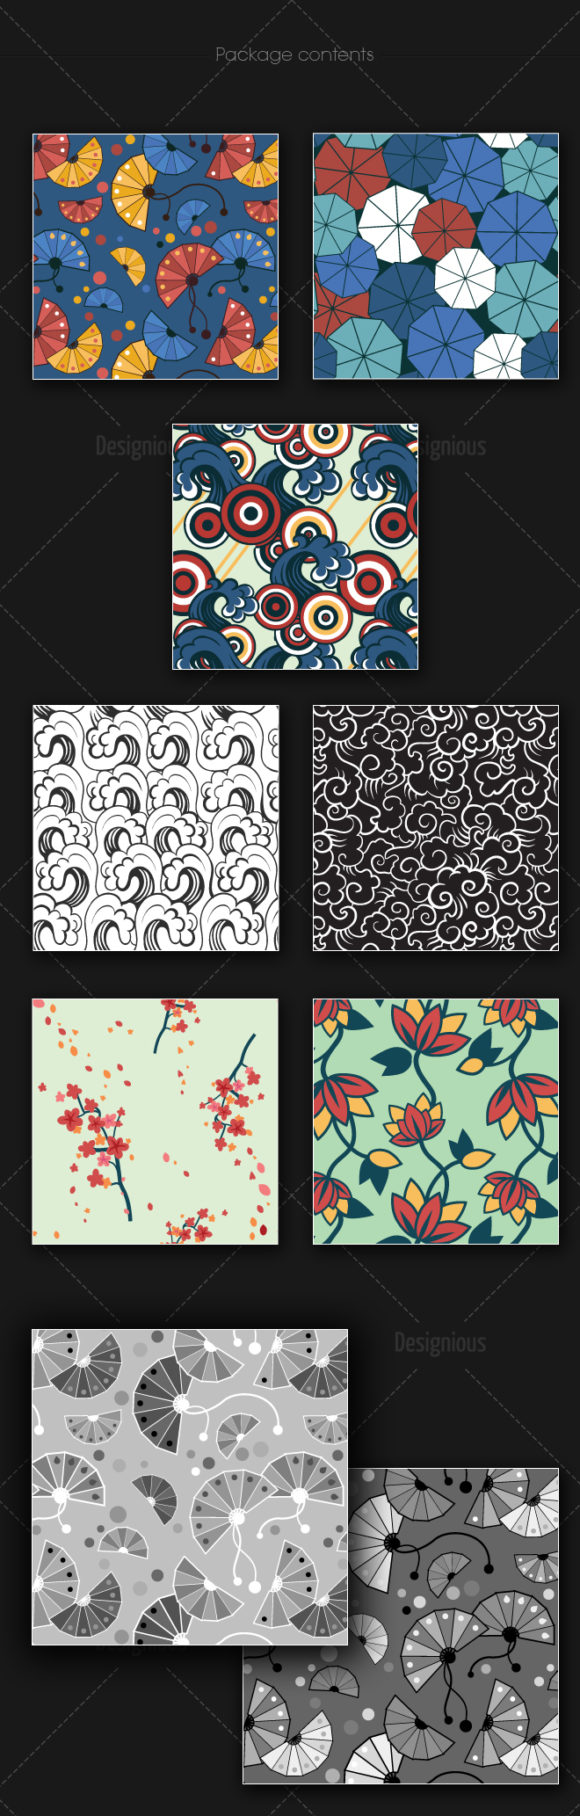 Seamless Patterns Vector Pack 157 products designious vector seamless 157 large